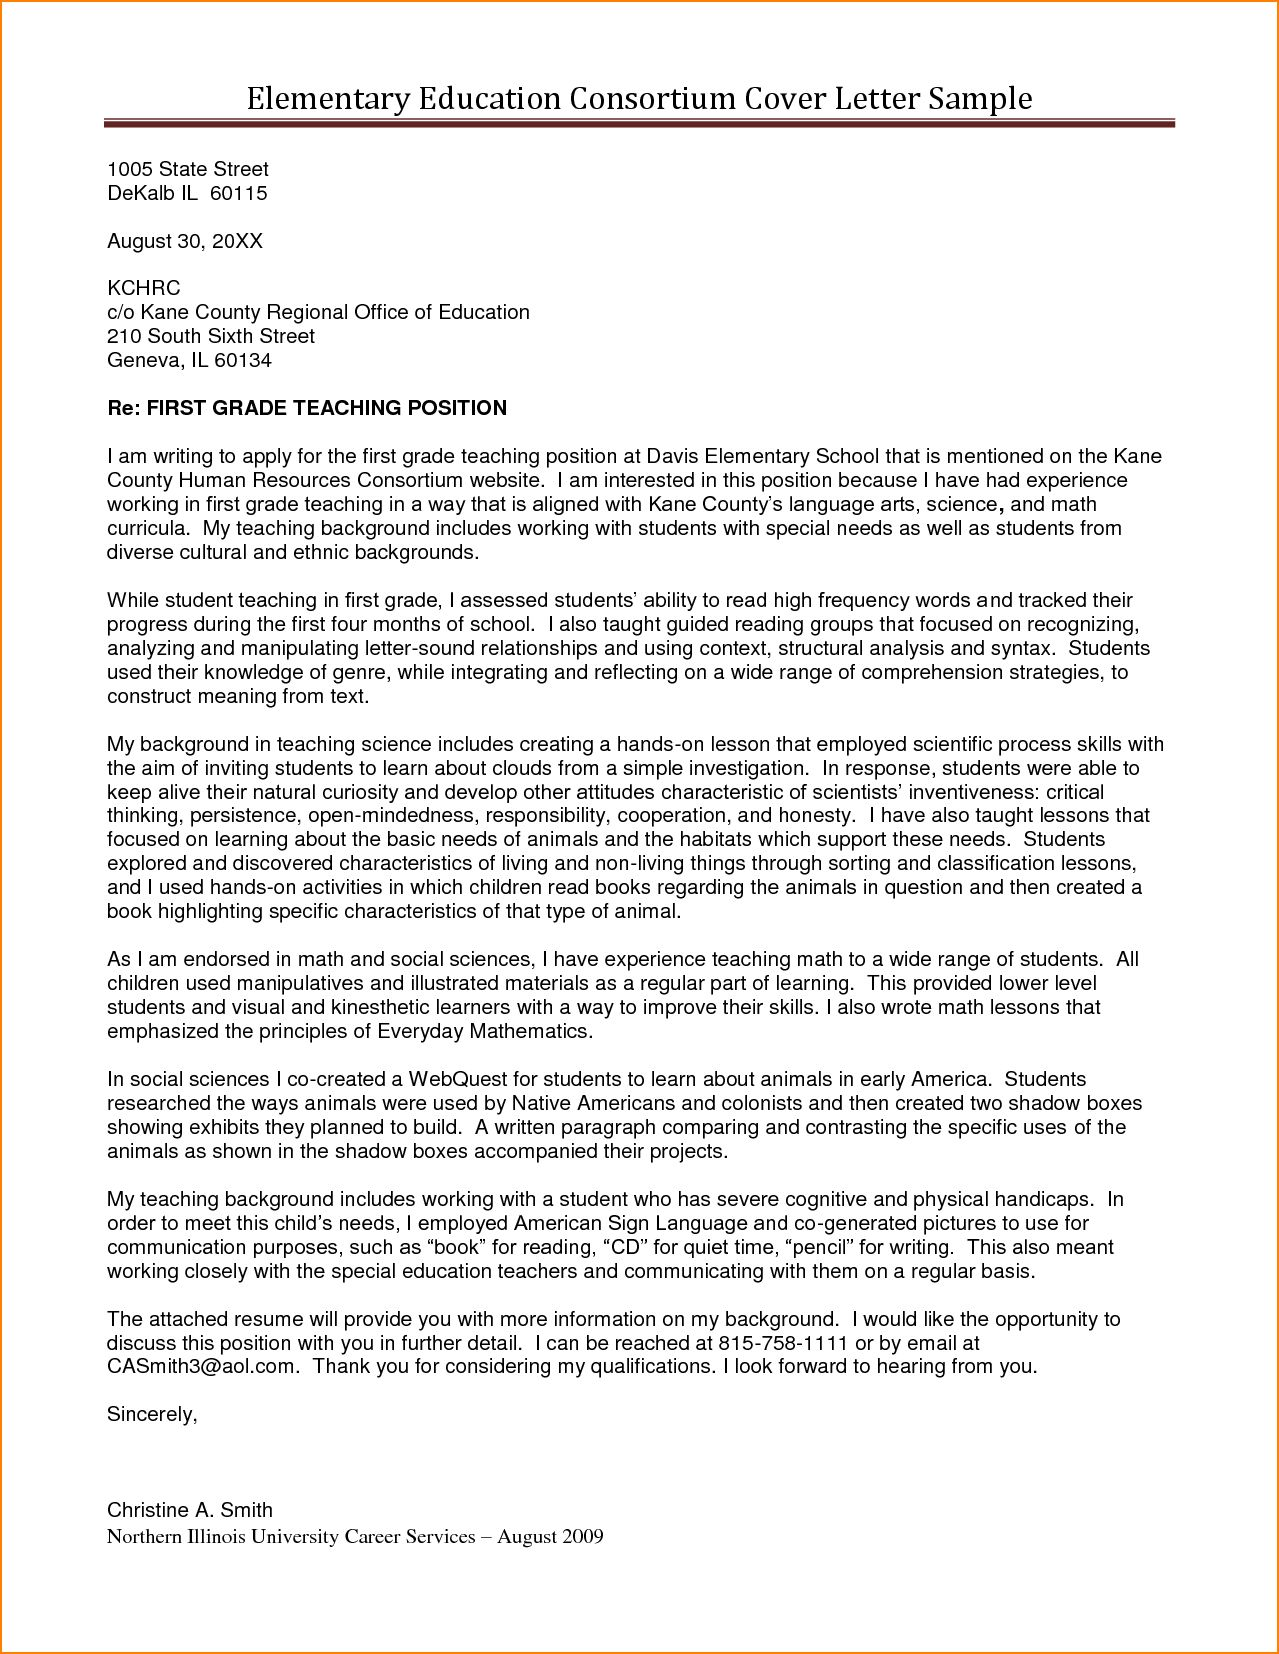 Cover Letter Template Higher Education | 2-Cover Letter ...